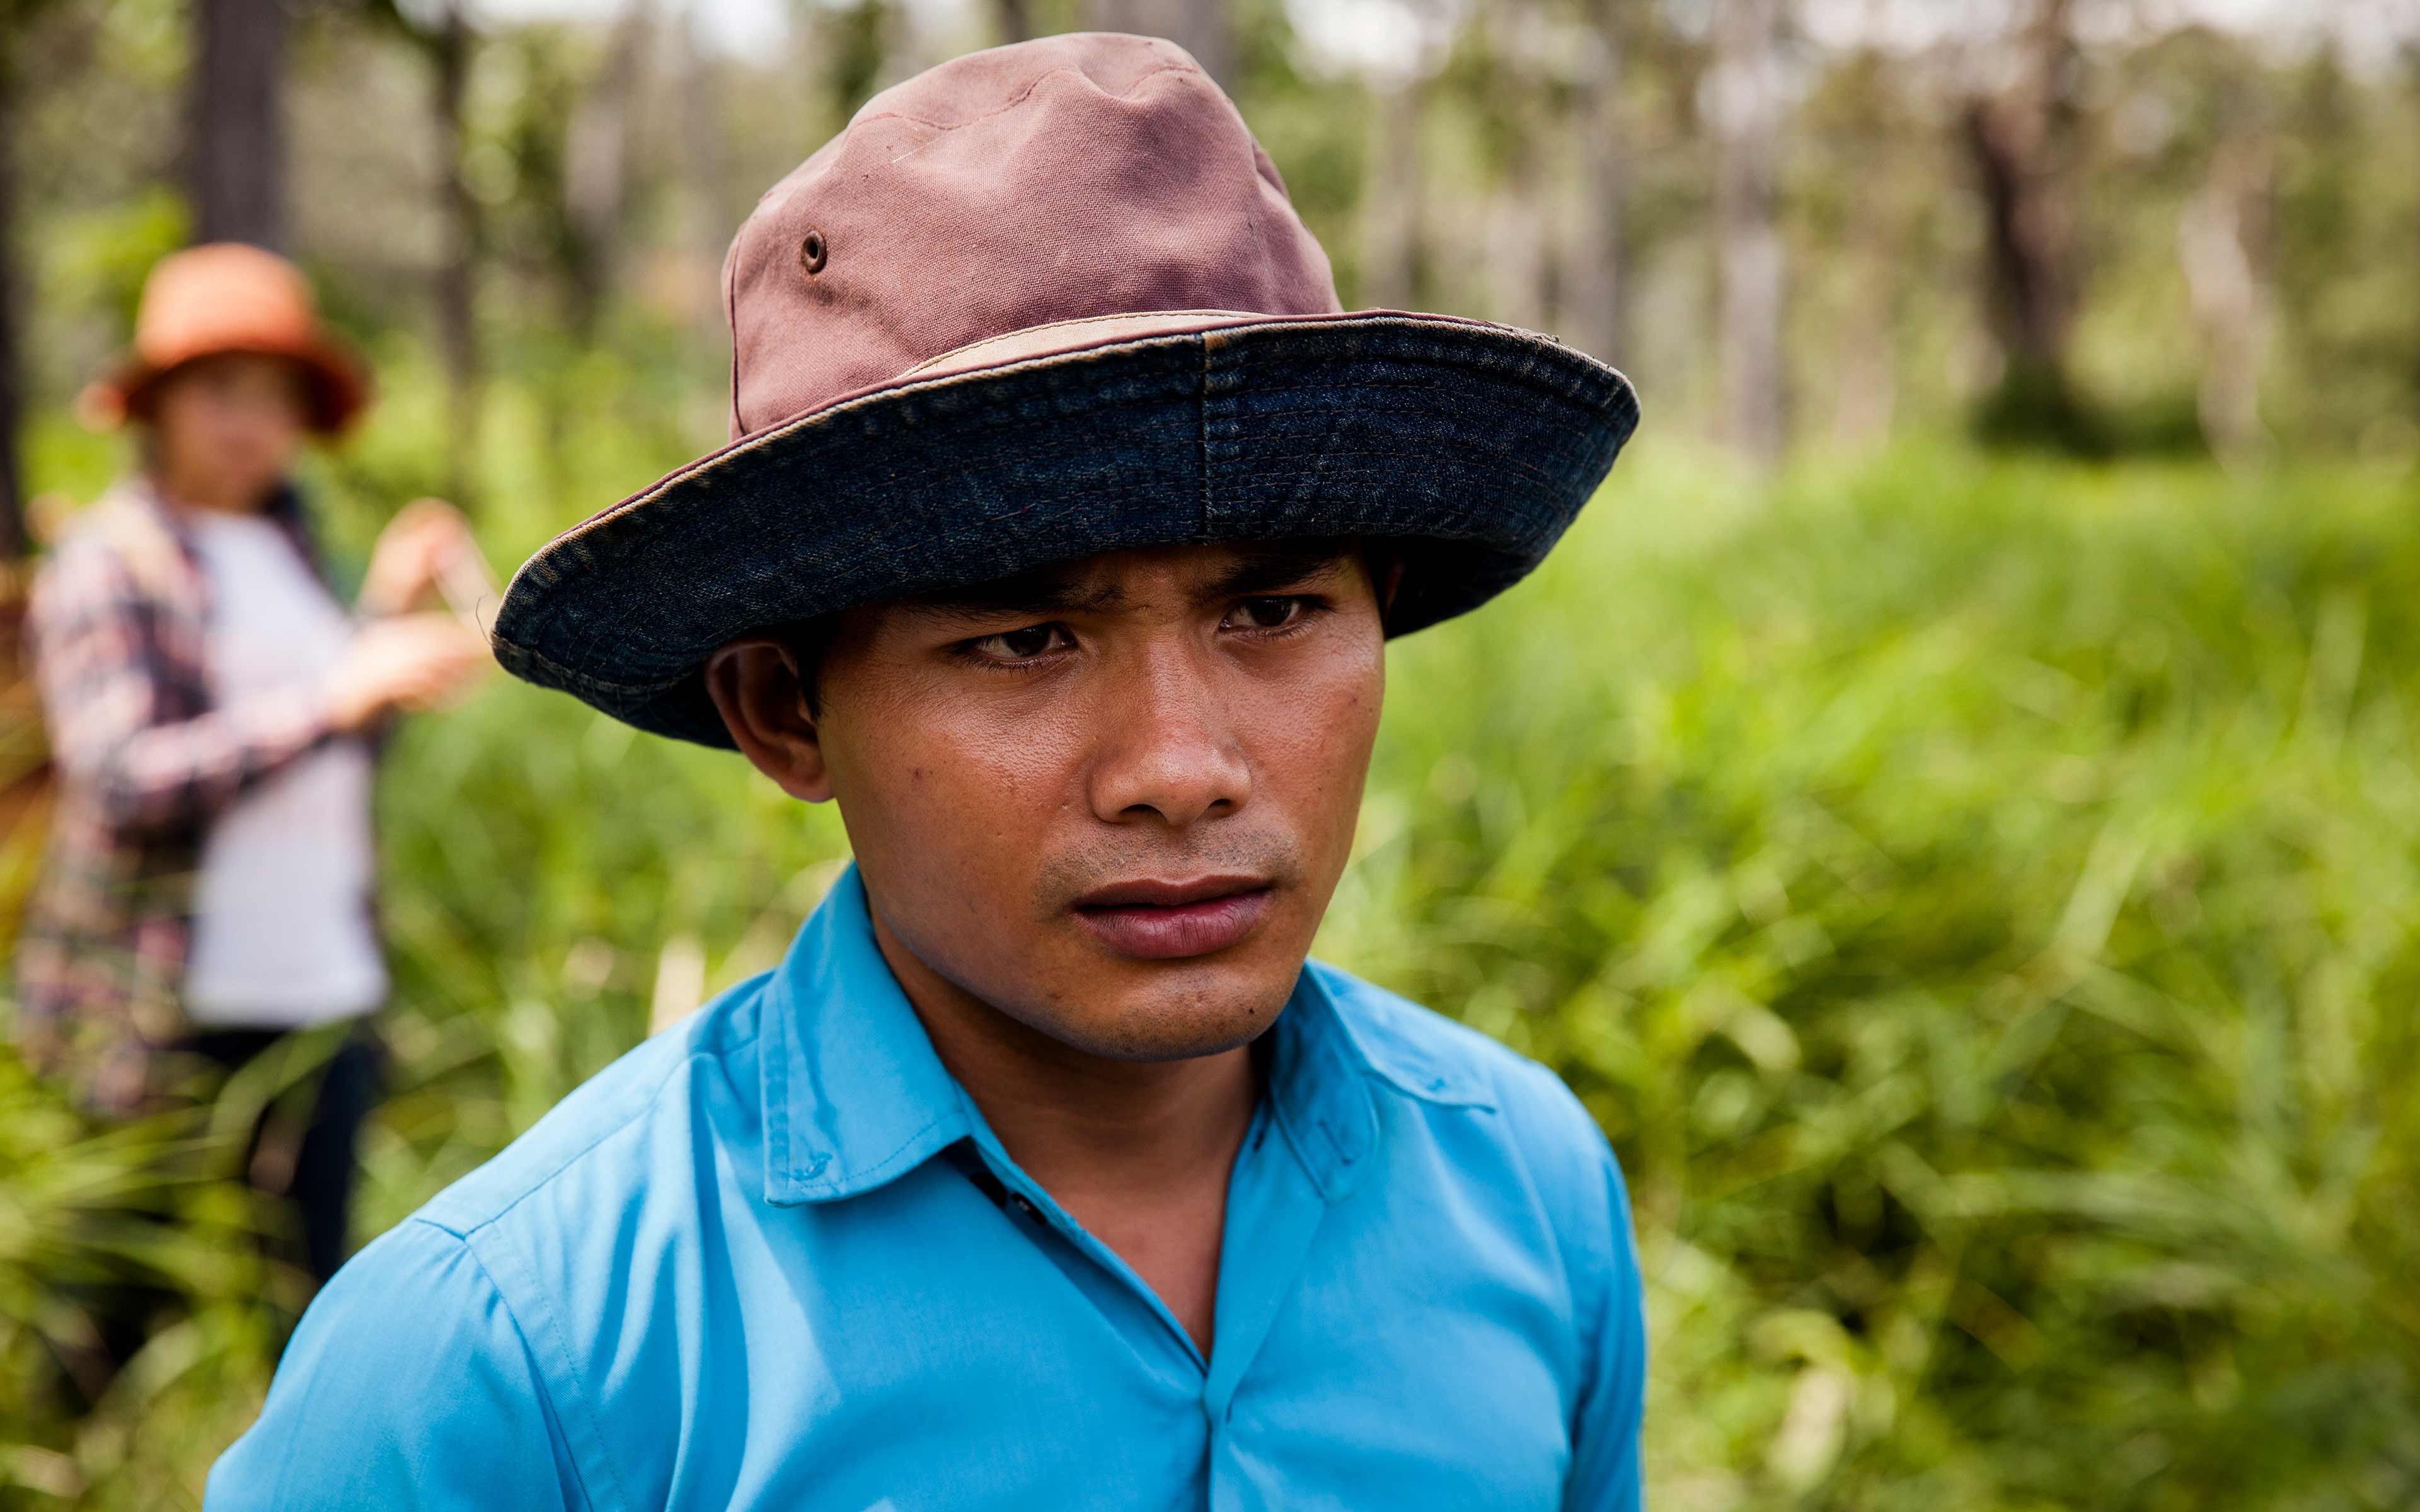 """Romam Nuth, 23, is a community journalist trained by Oxfam's partner Media One. He has become a leader of efforts to protect the forest in his village in northeastern Cambodia, and uses social media channels like Facebook to share information about his ethnic Jarai community and the community's struggle to protect its land and forest. """"Facebook is a useful thing,"""" he says. """"Without it, I could not share these issues with outsiders."""""""